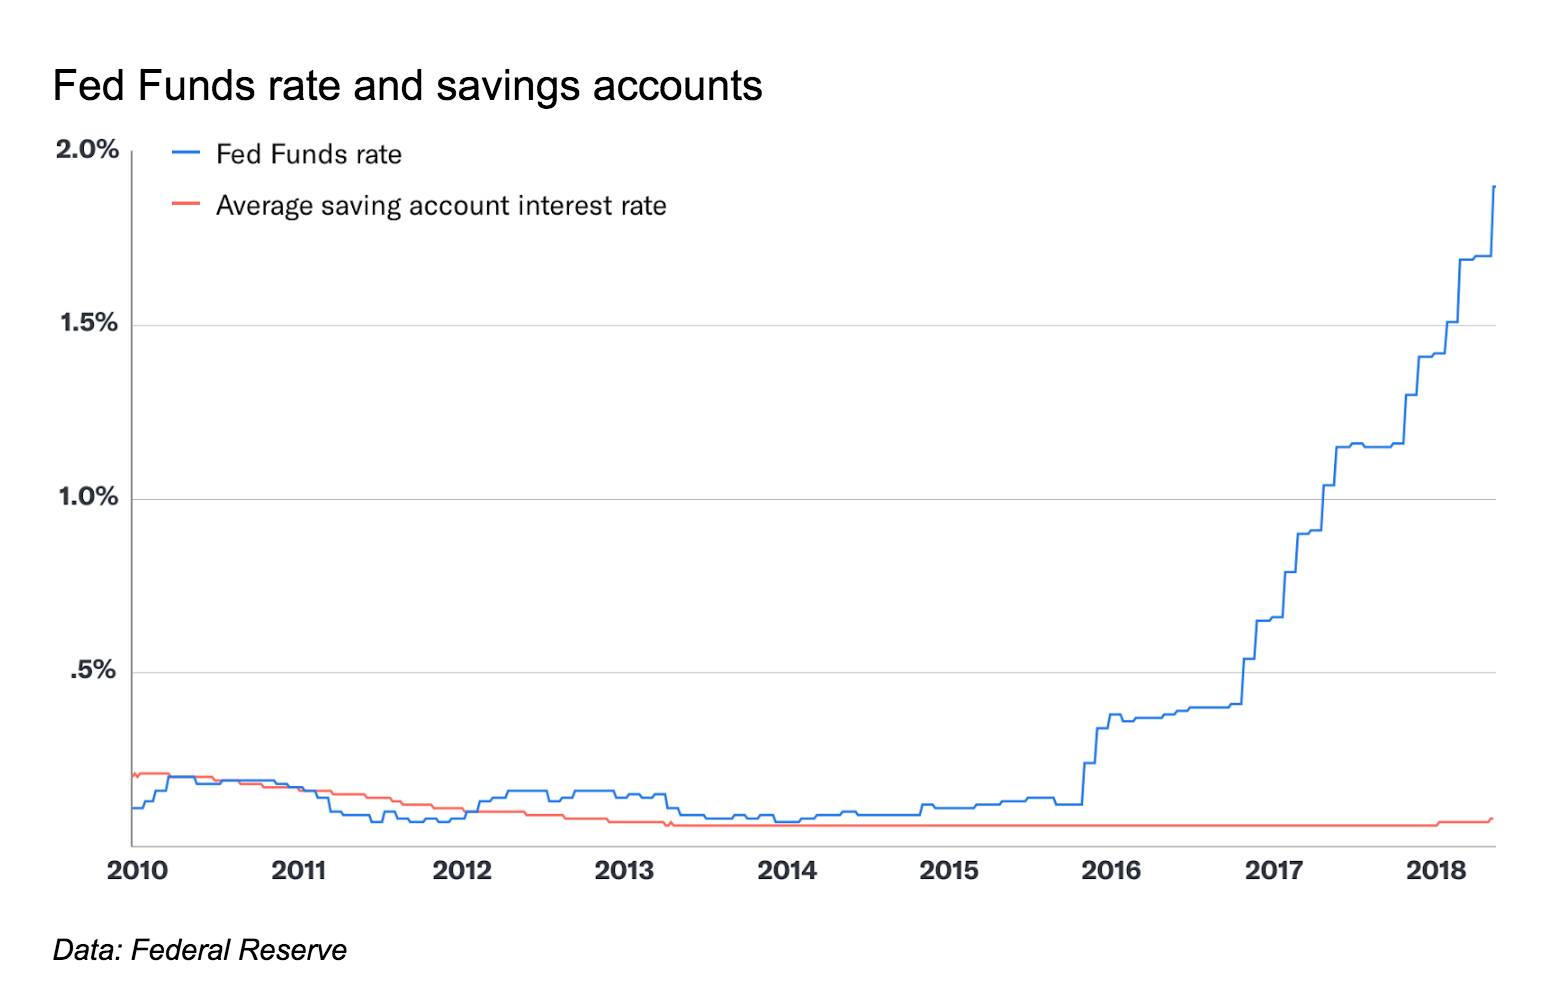 Betterment Smart Saver savings account interest rates